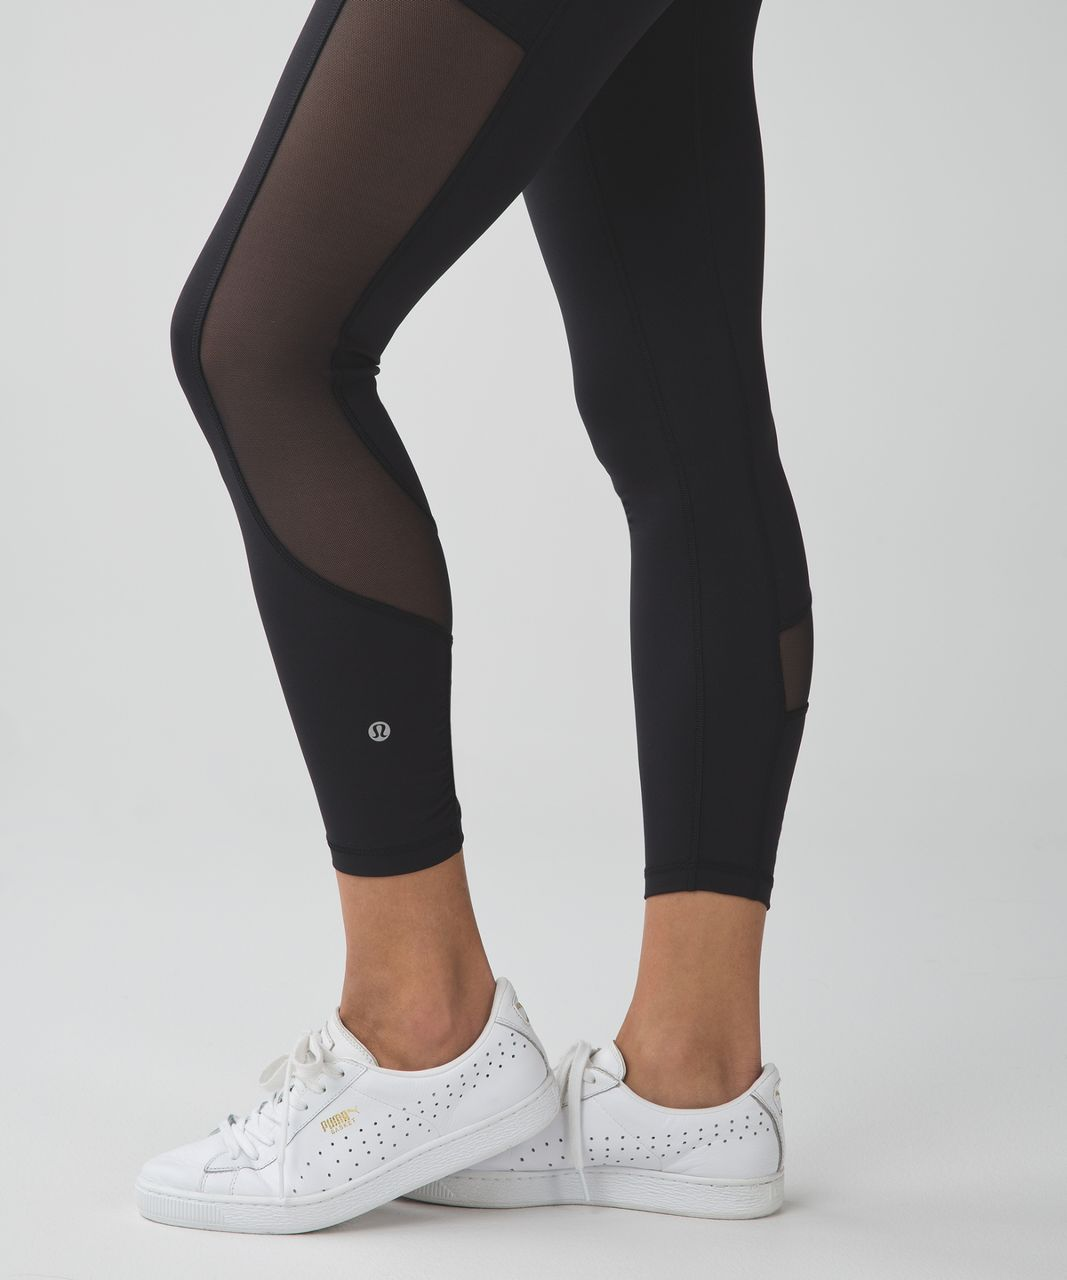 Lululemon High Times Pant (Cool To Street) - Black